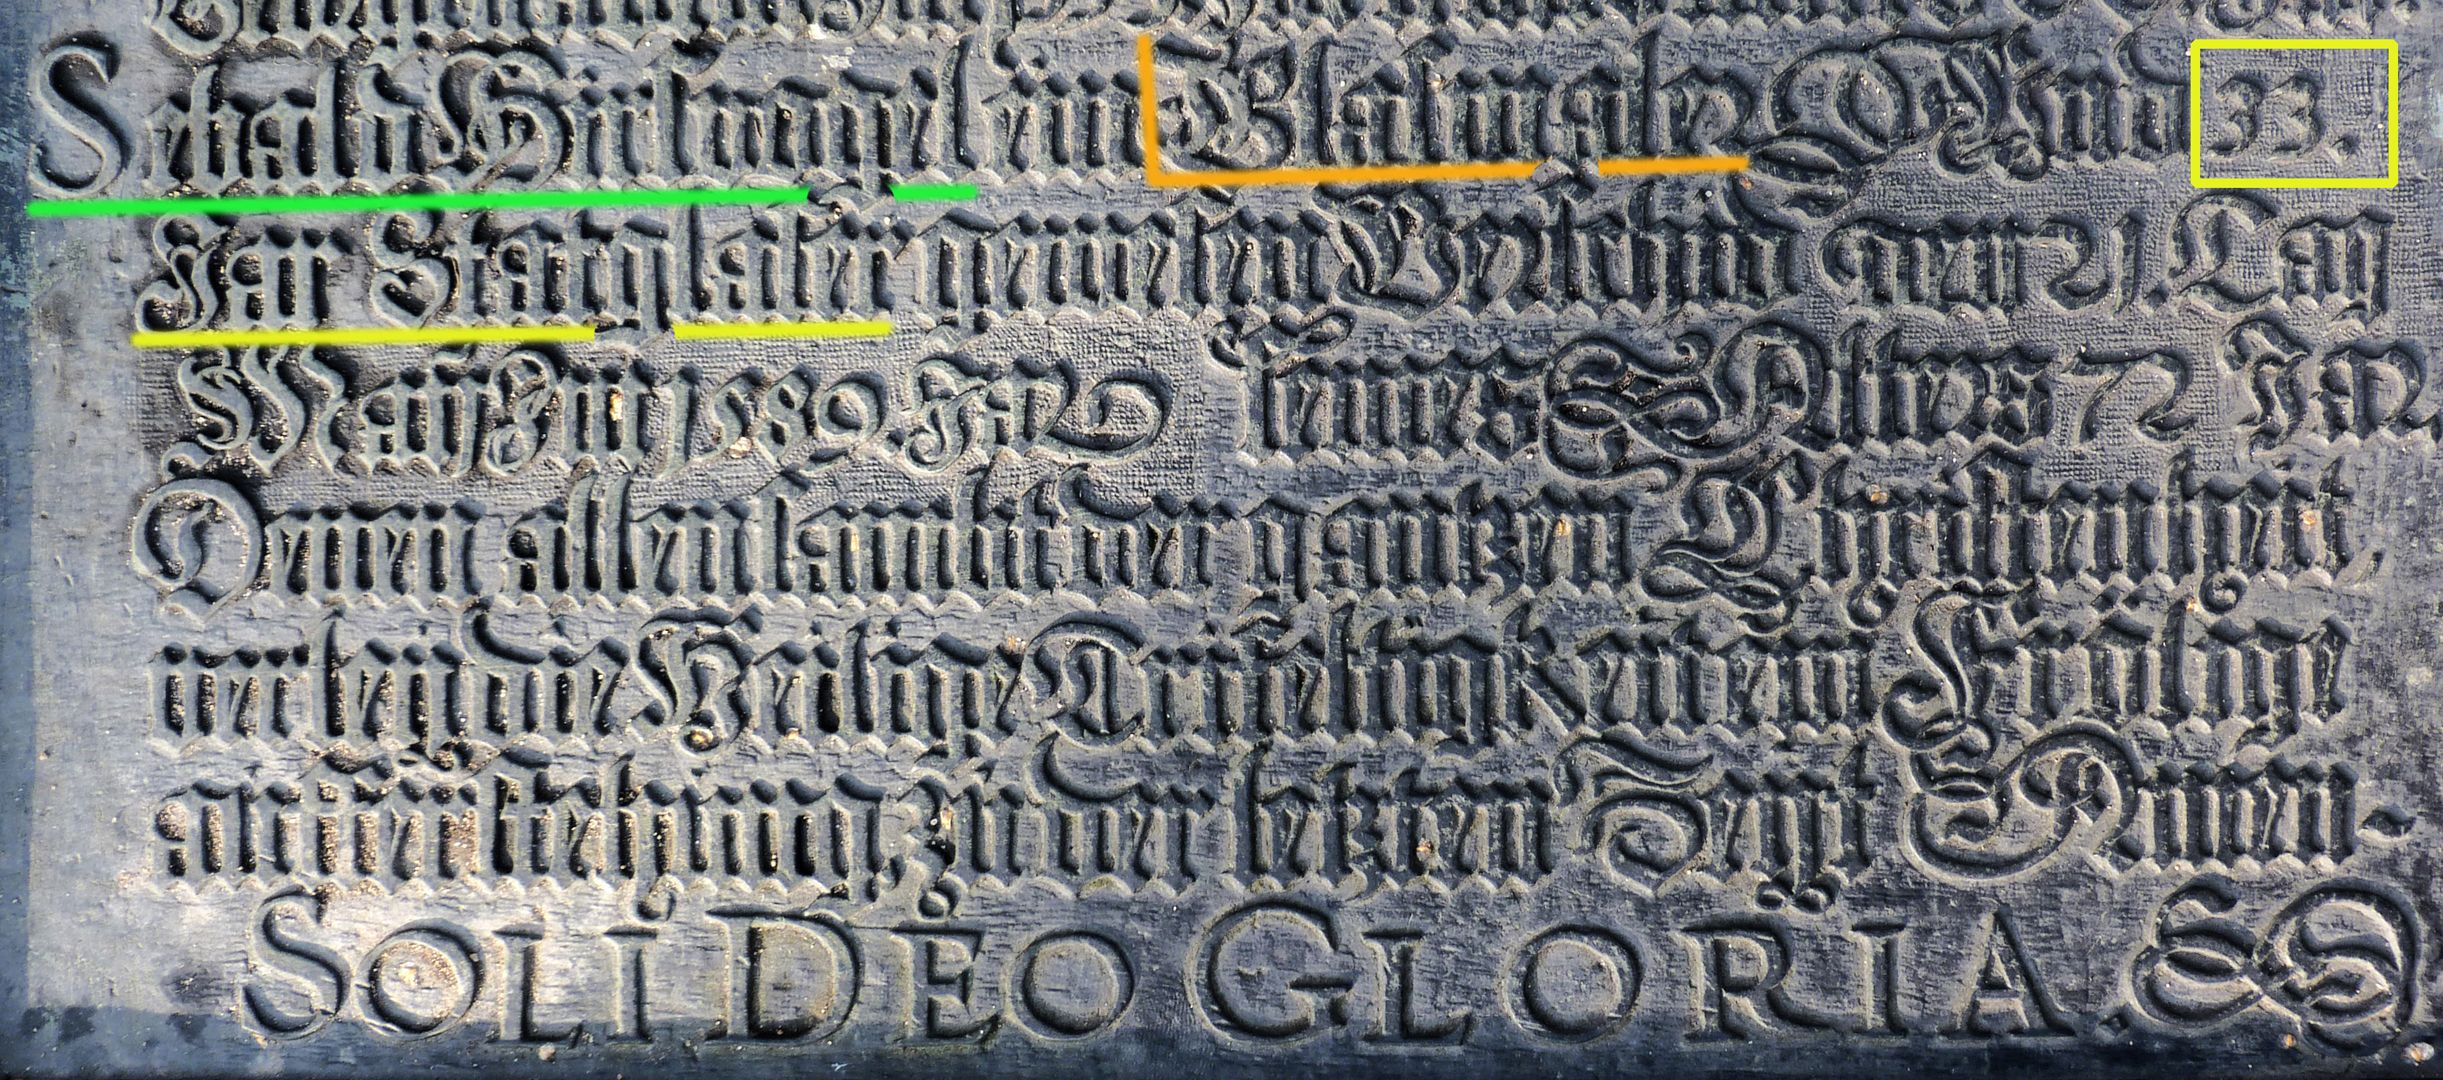 Hirsvogel Epitaph lower part of the panel with entry Sebald Hirsvogel / mark (name, glass painter, years as city glazier)